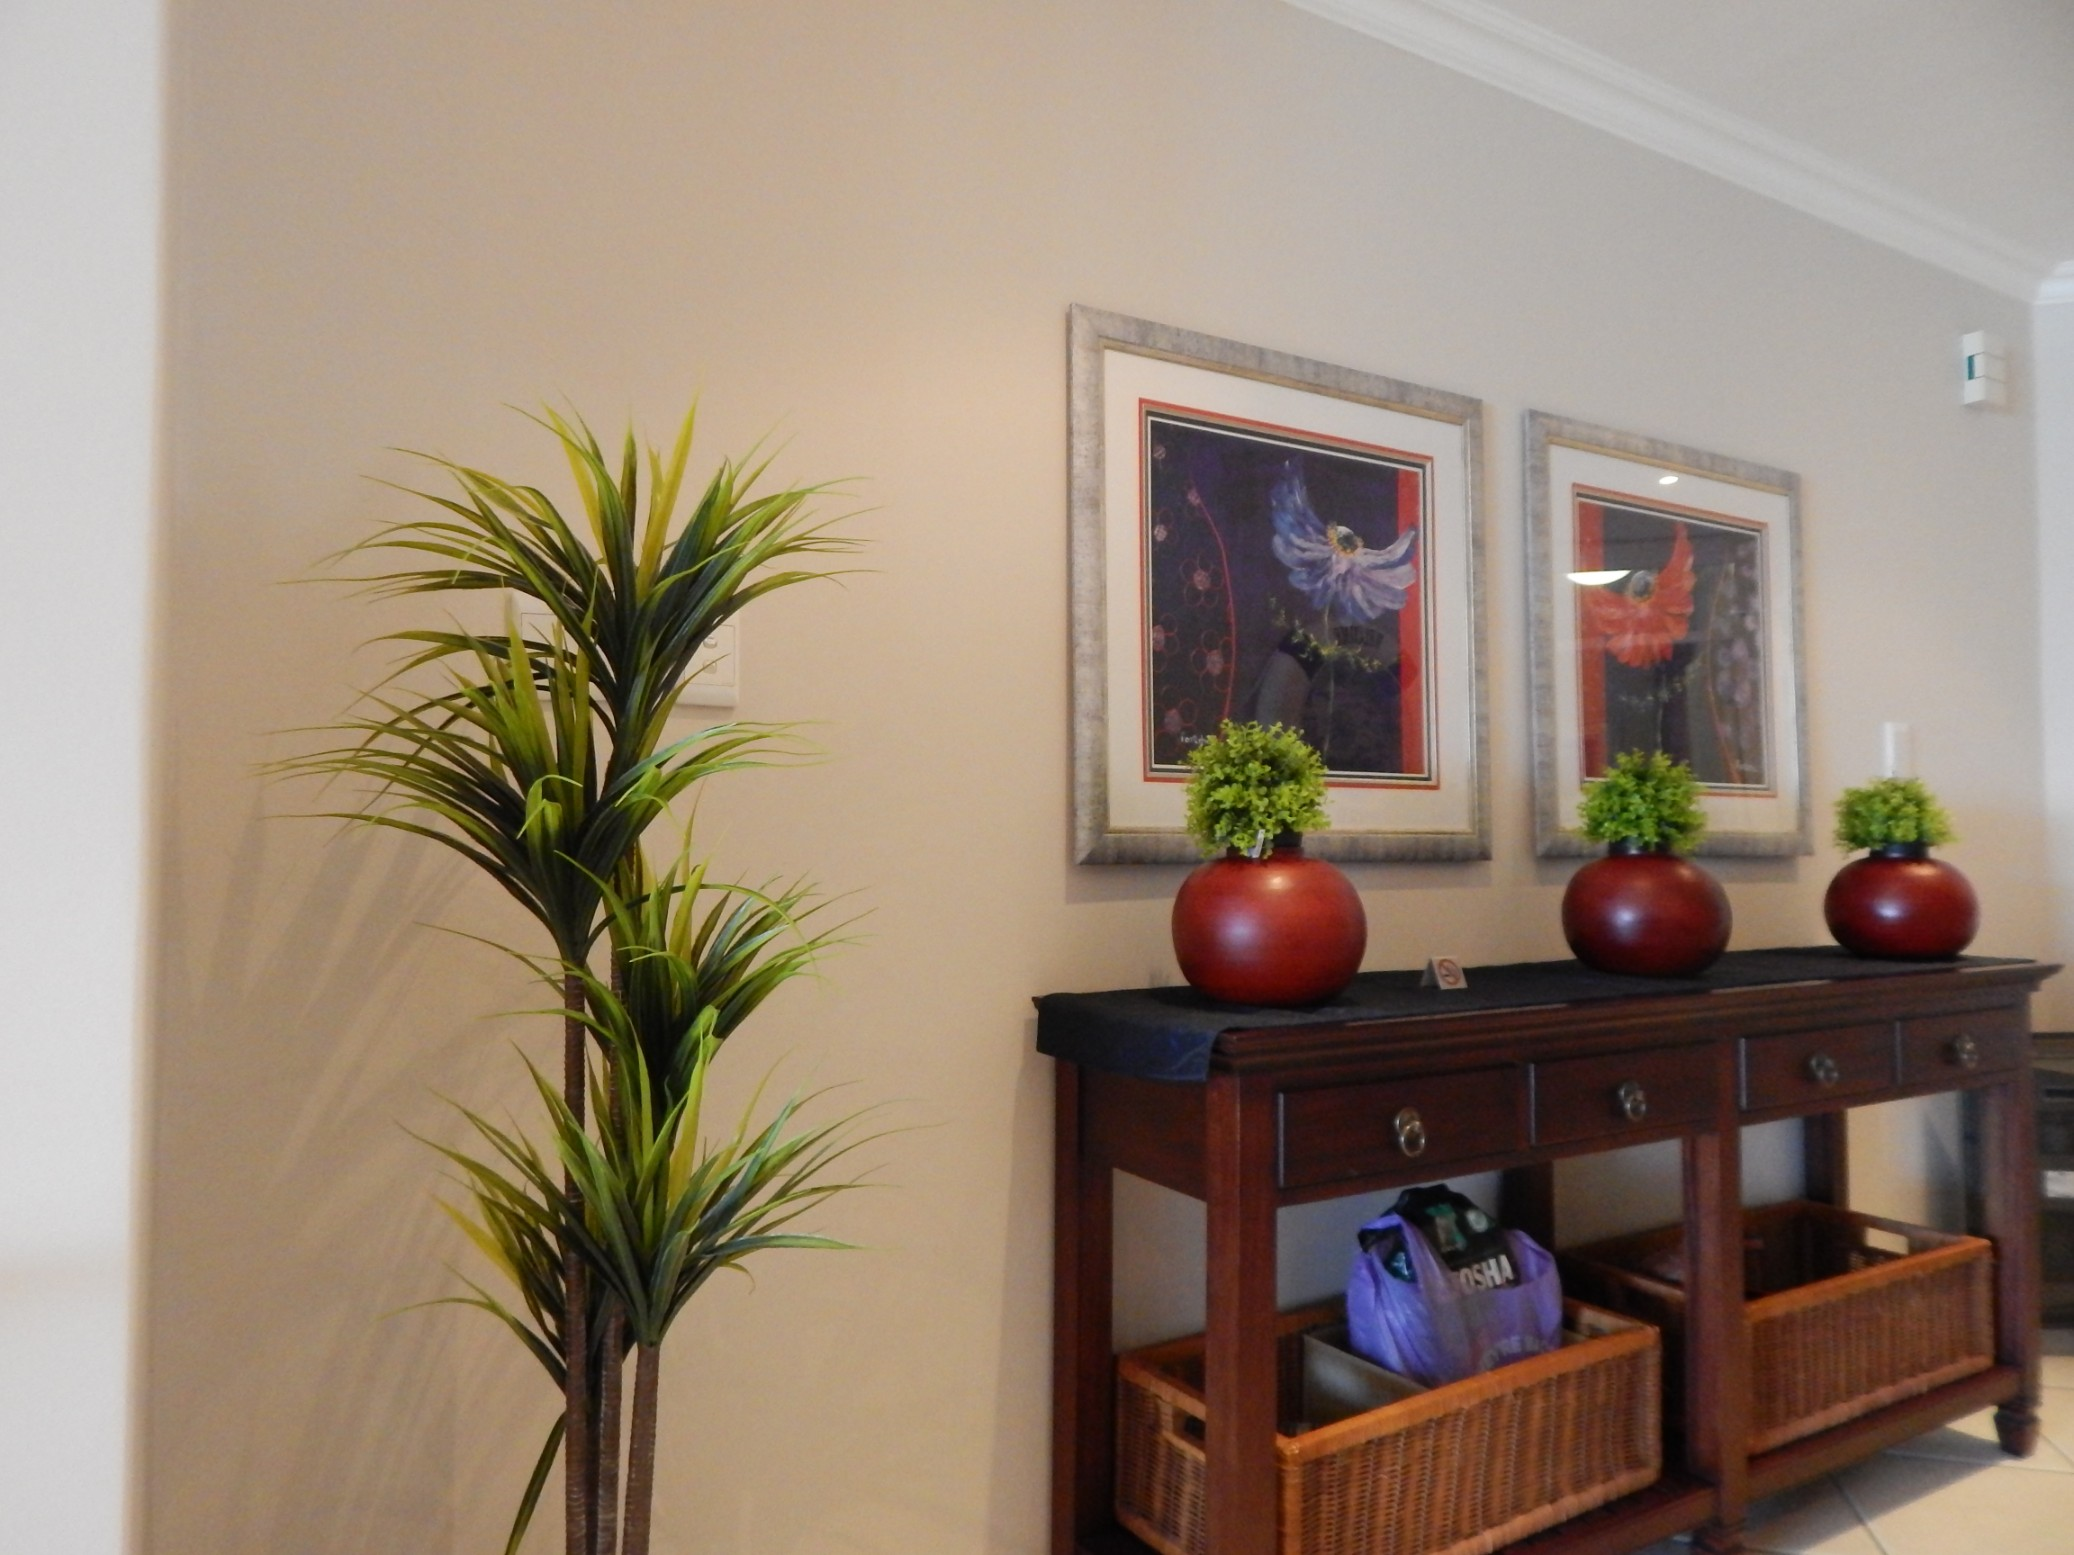 3 Bedroom Apartment for sale in Diaz Beach ENT0069020 : photo#10